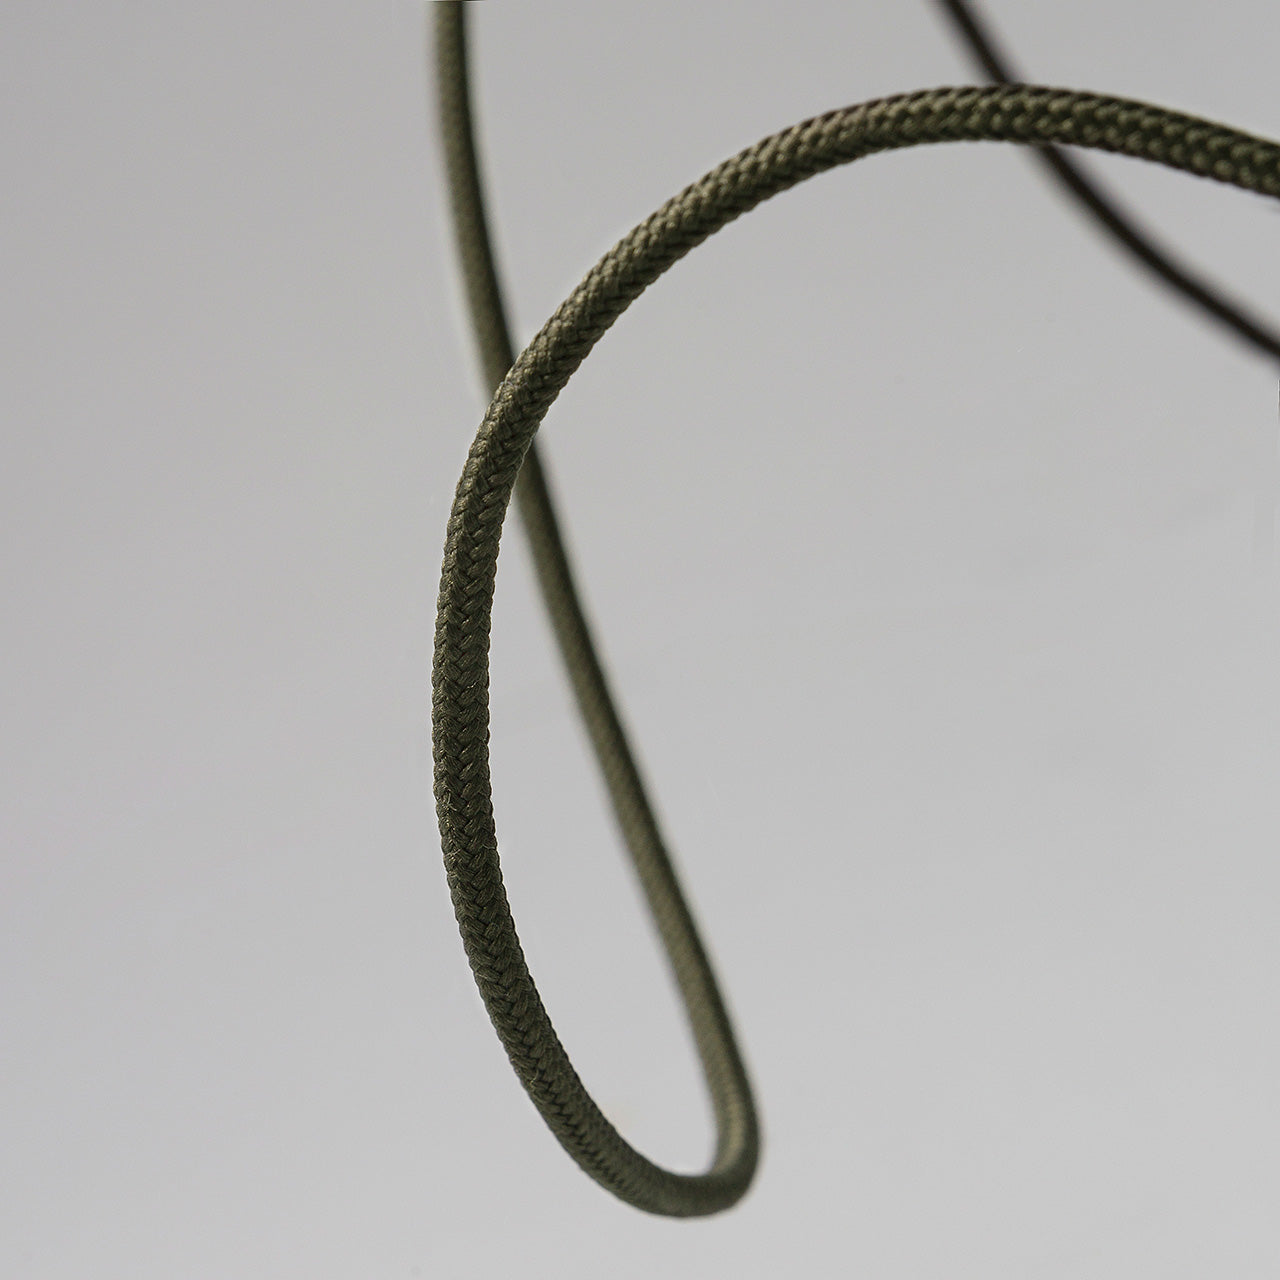 KNOK glasses chain olive color detail